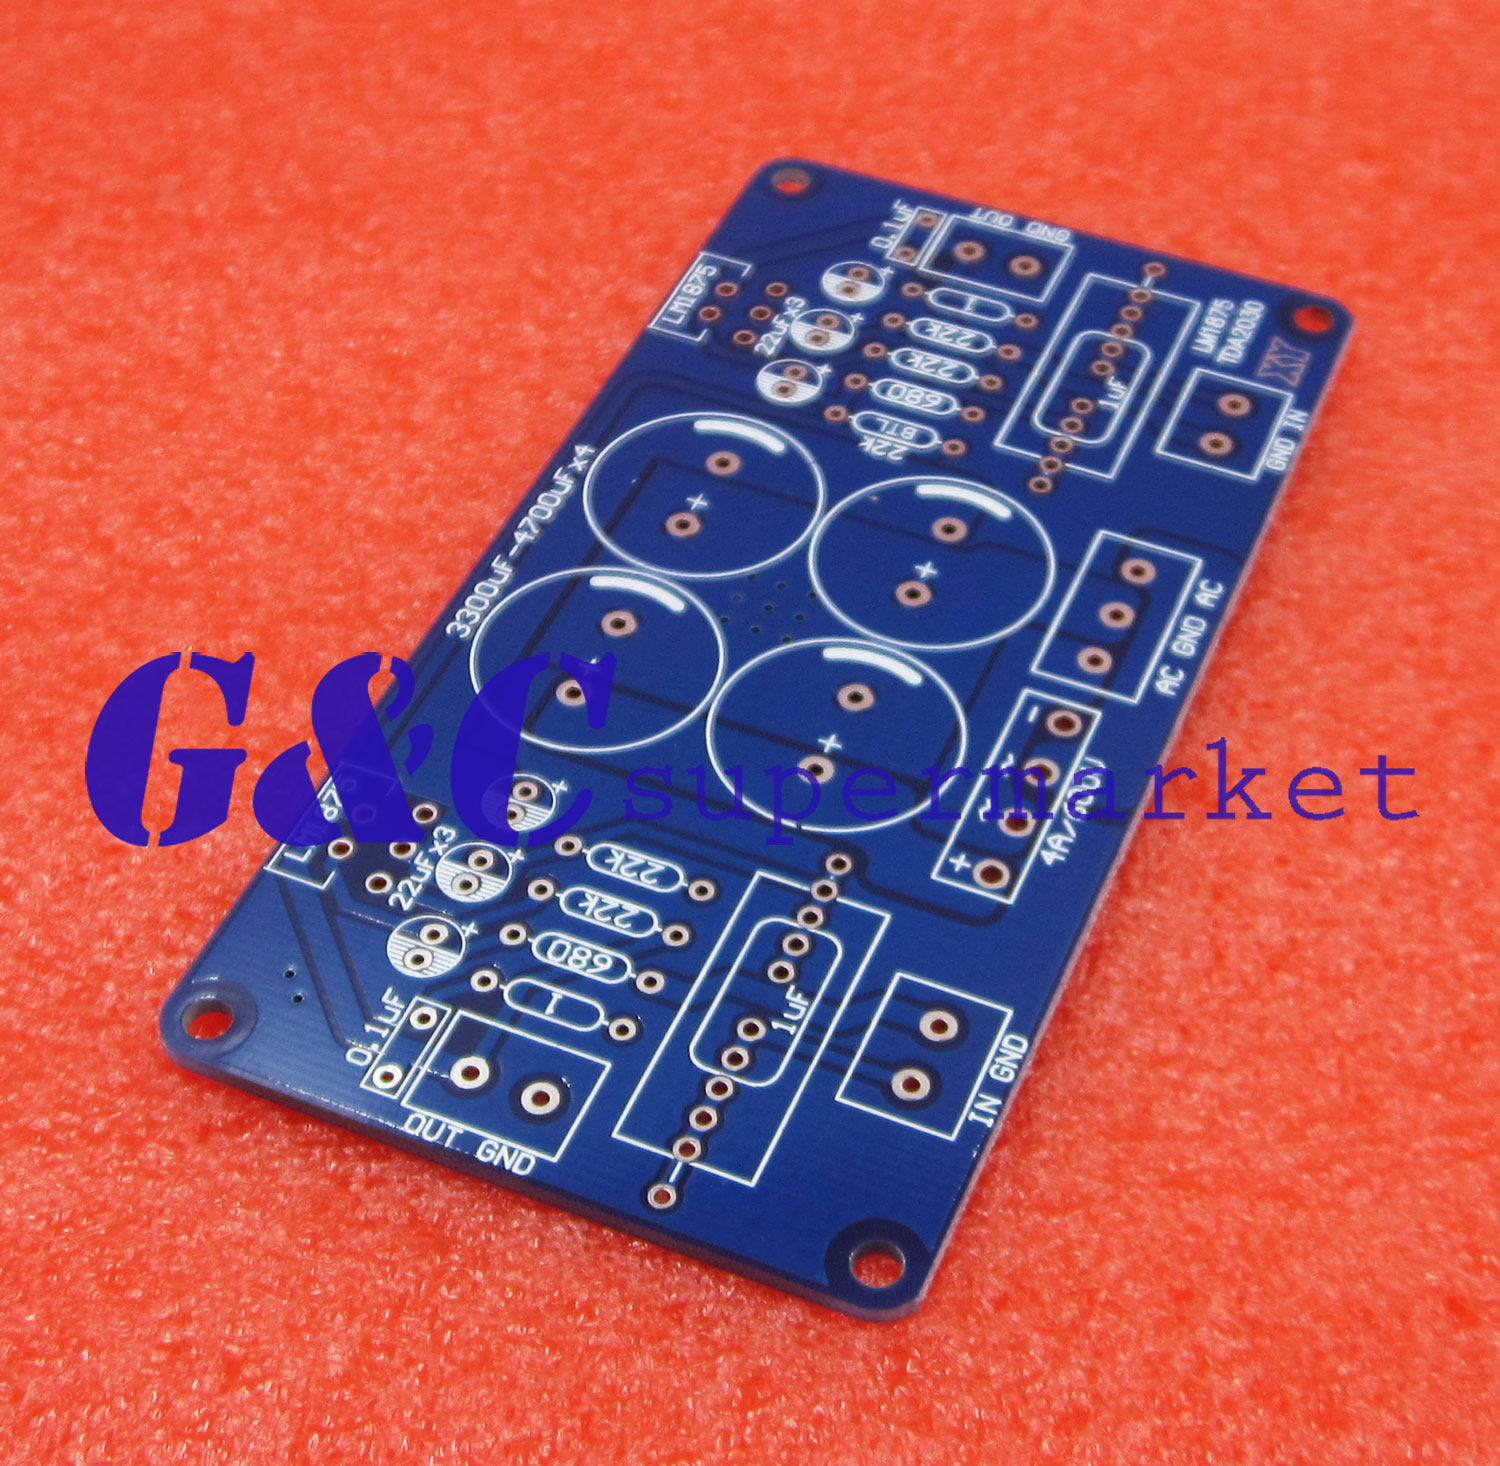 Lm675 Lm1875t Tda2030 Tda2030a Audio Power Amplifier Pcb Board Diy Amplifierwith